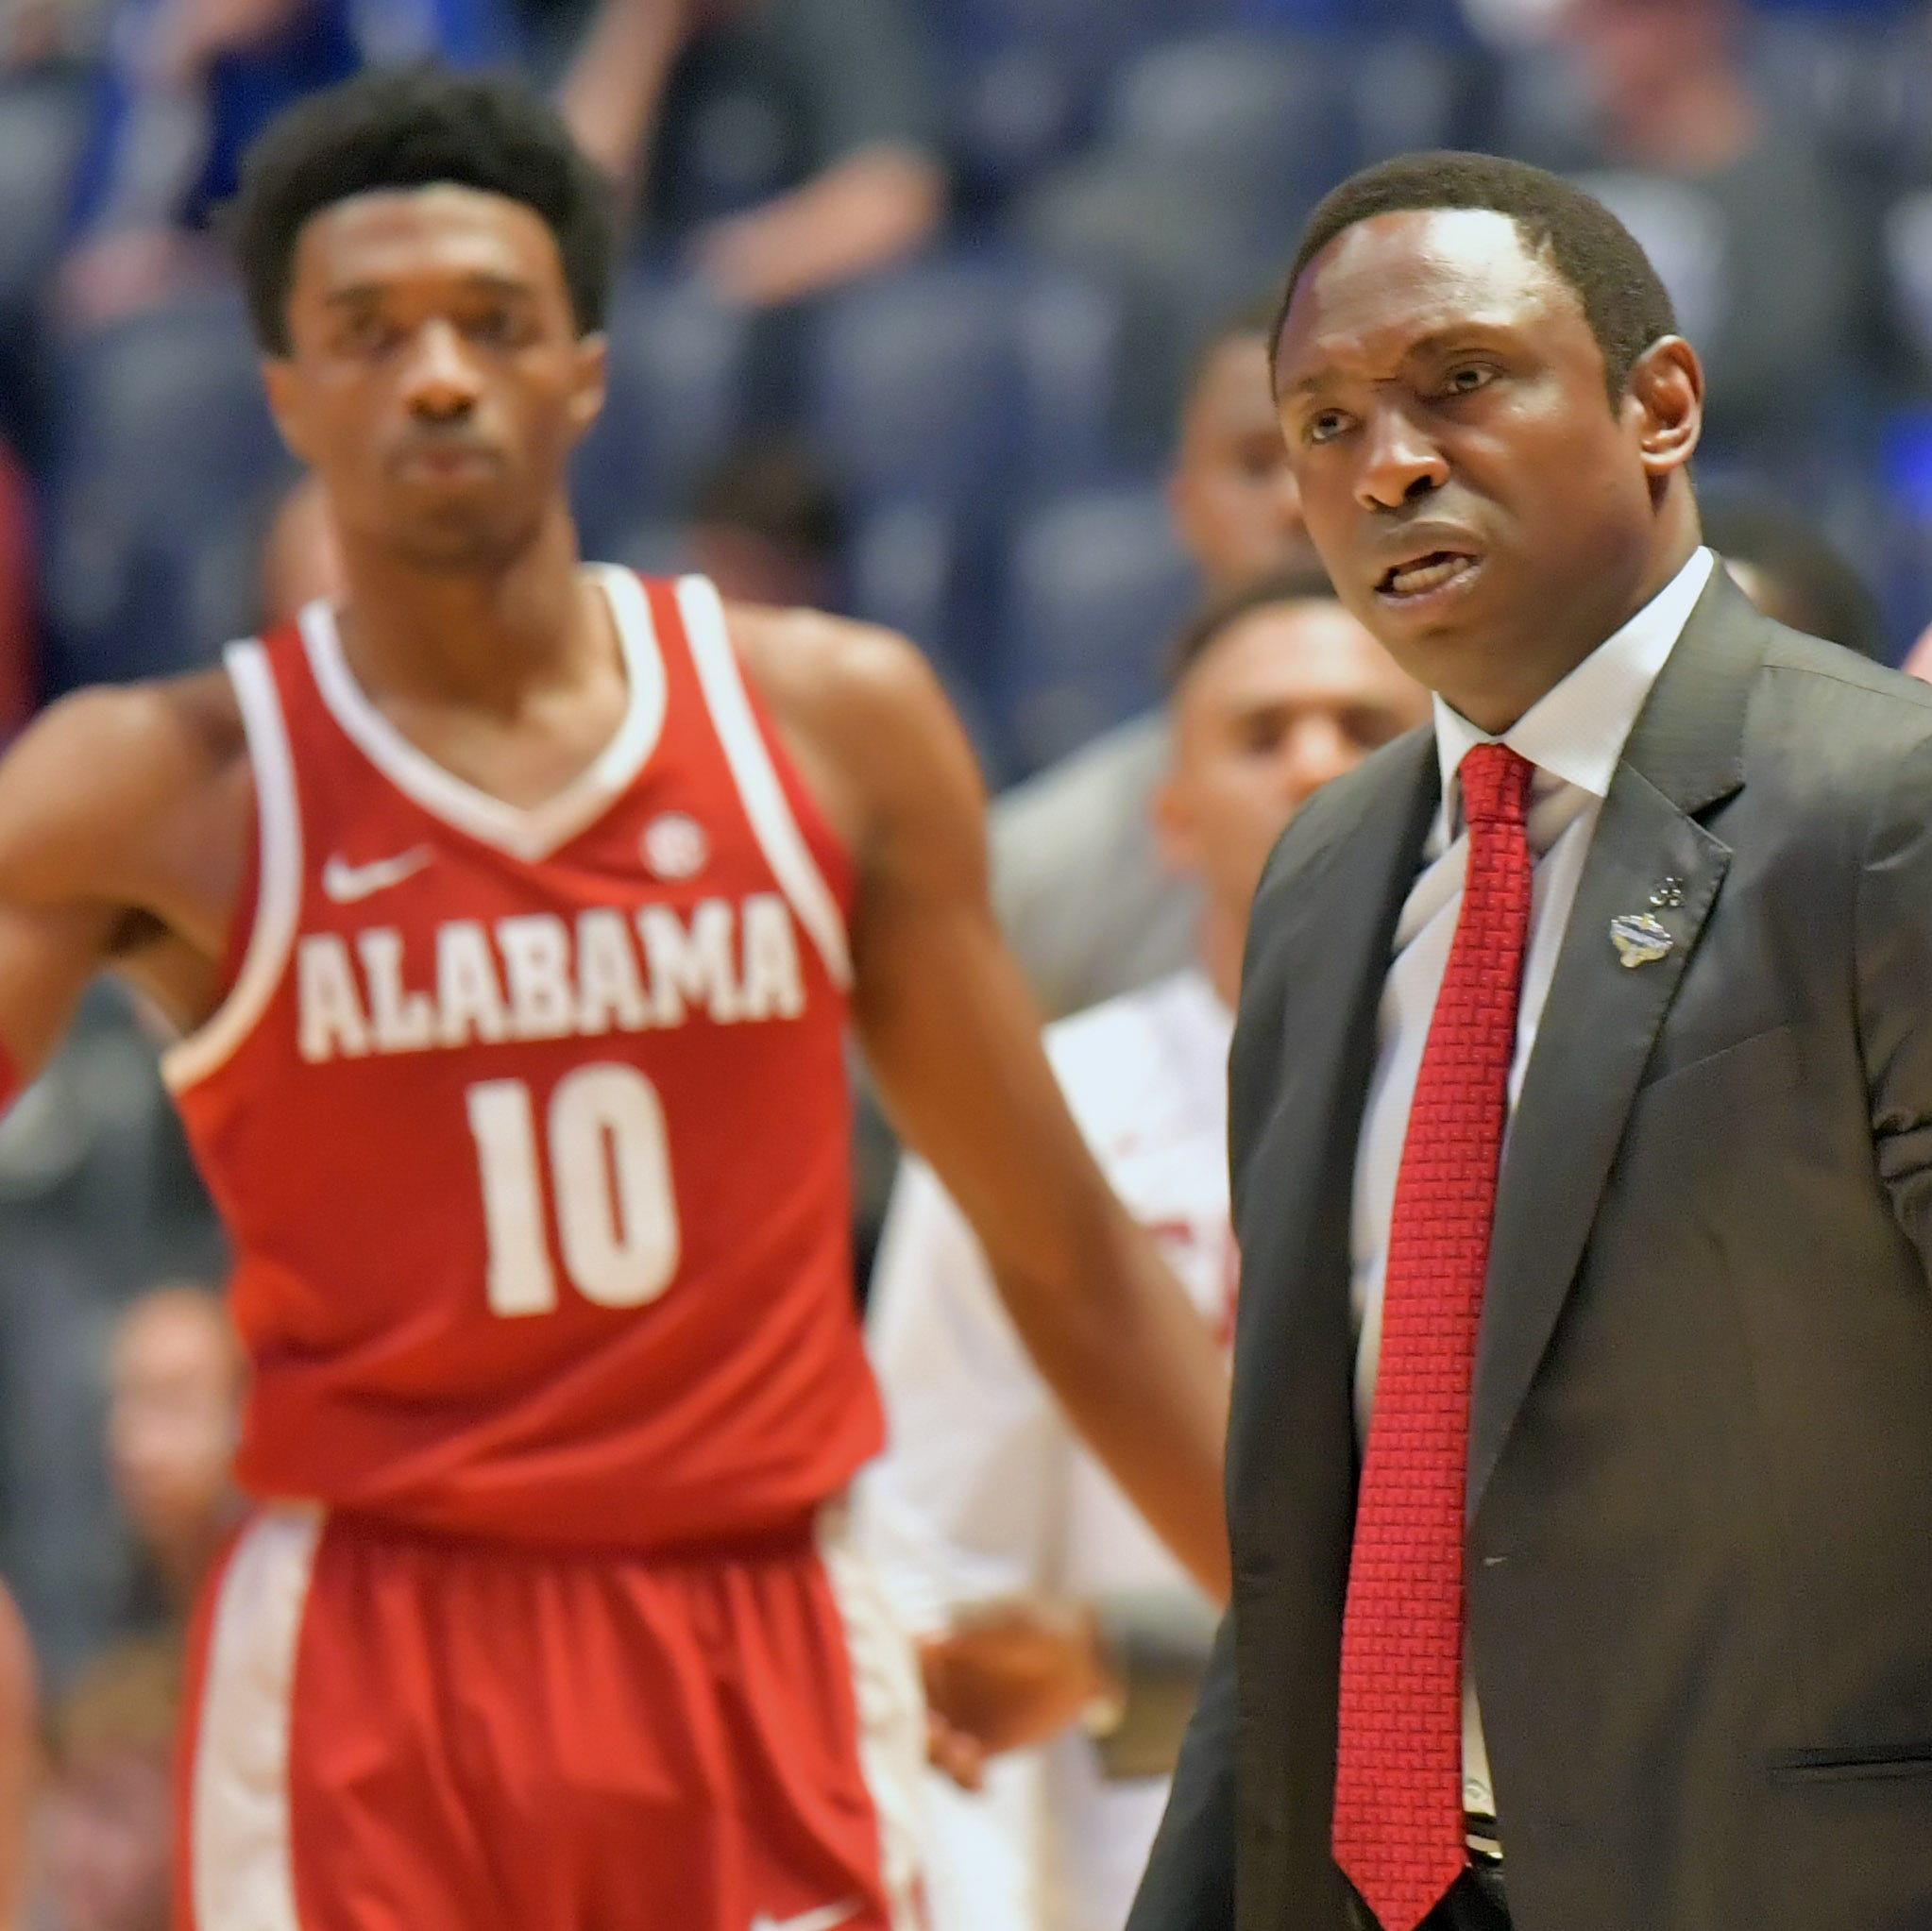 'Avery Johnson deserves another chance': Alabama fans react to possible end of coach's tenure